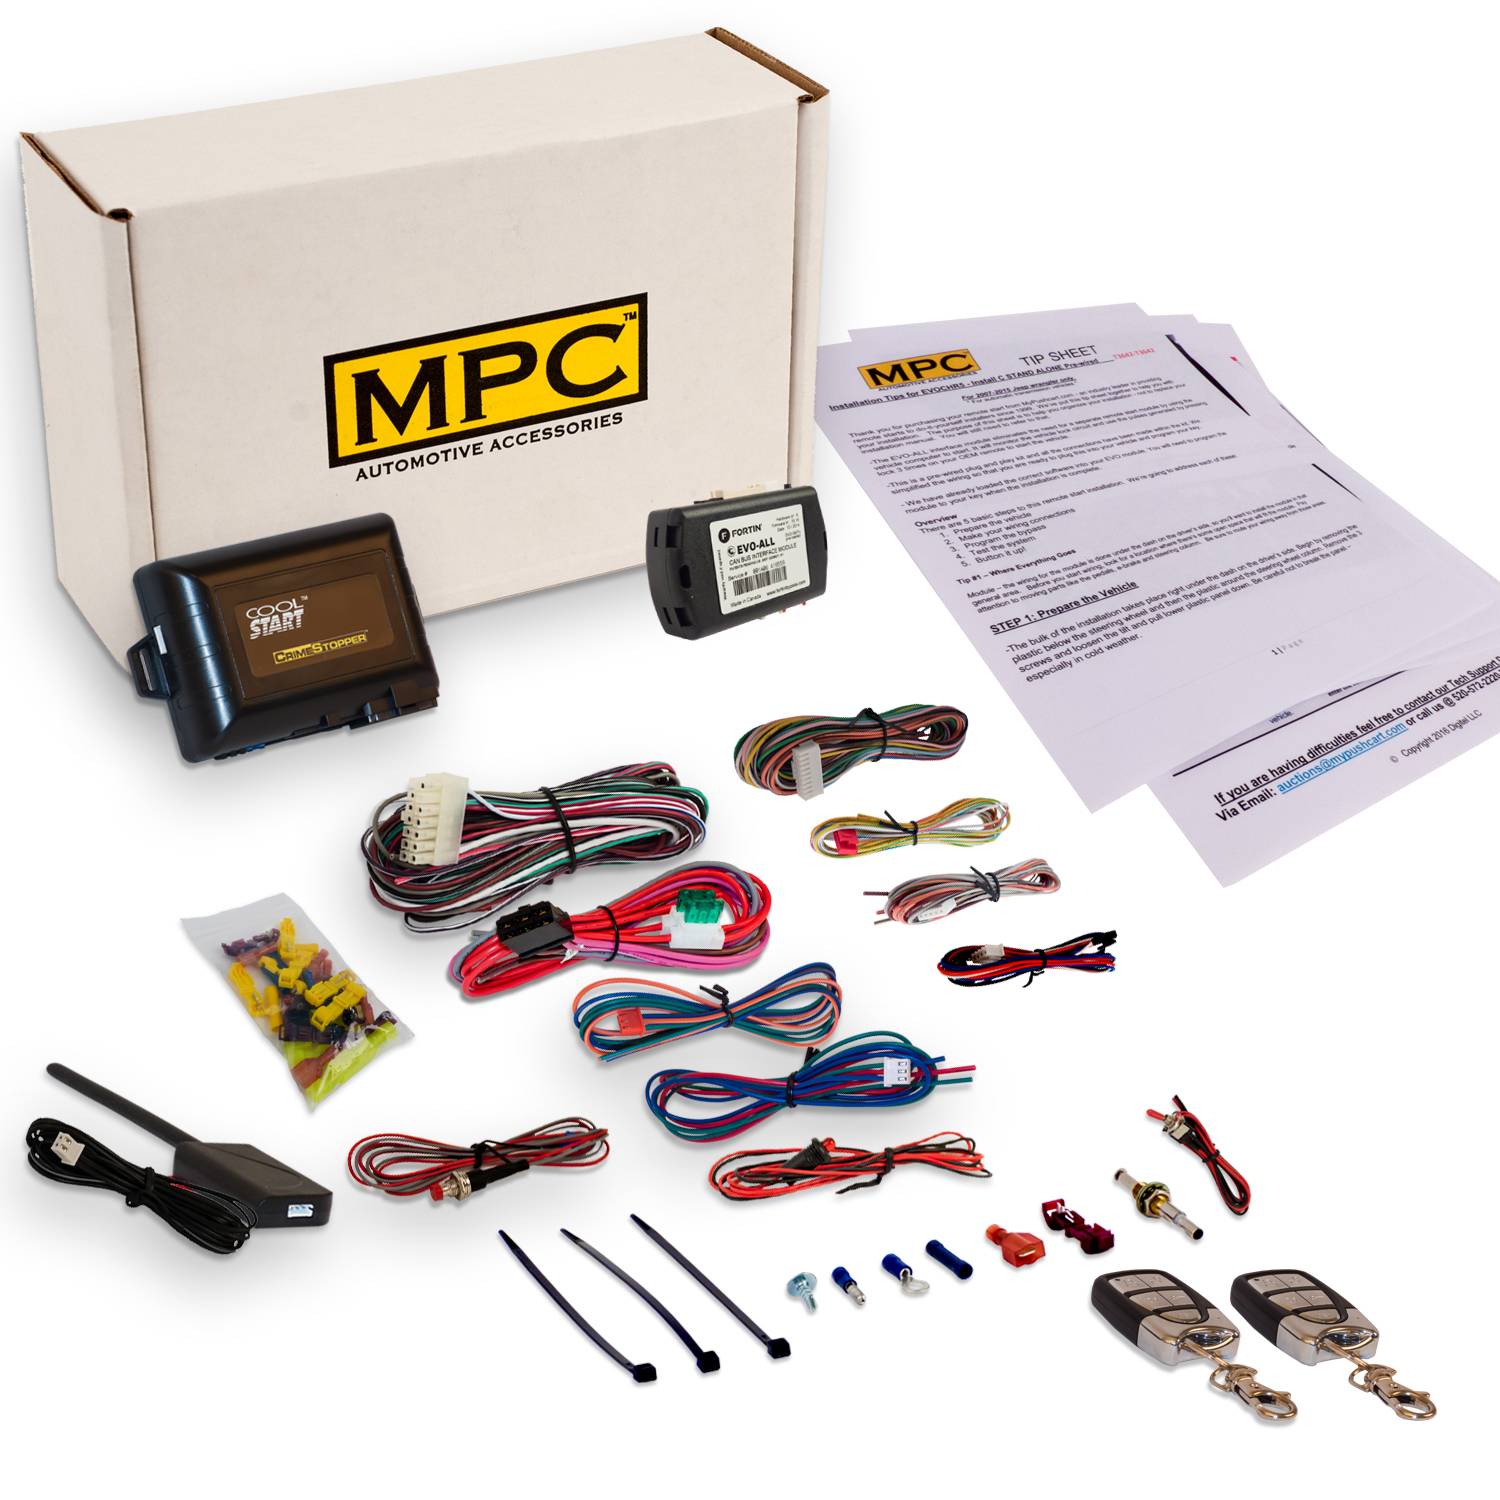 Complete Remote Start Kit With Keyless Entry For 2009-2010 Ford F-150